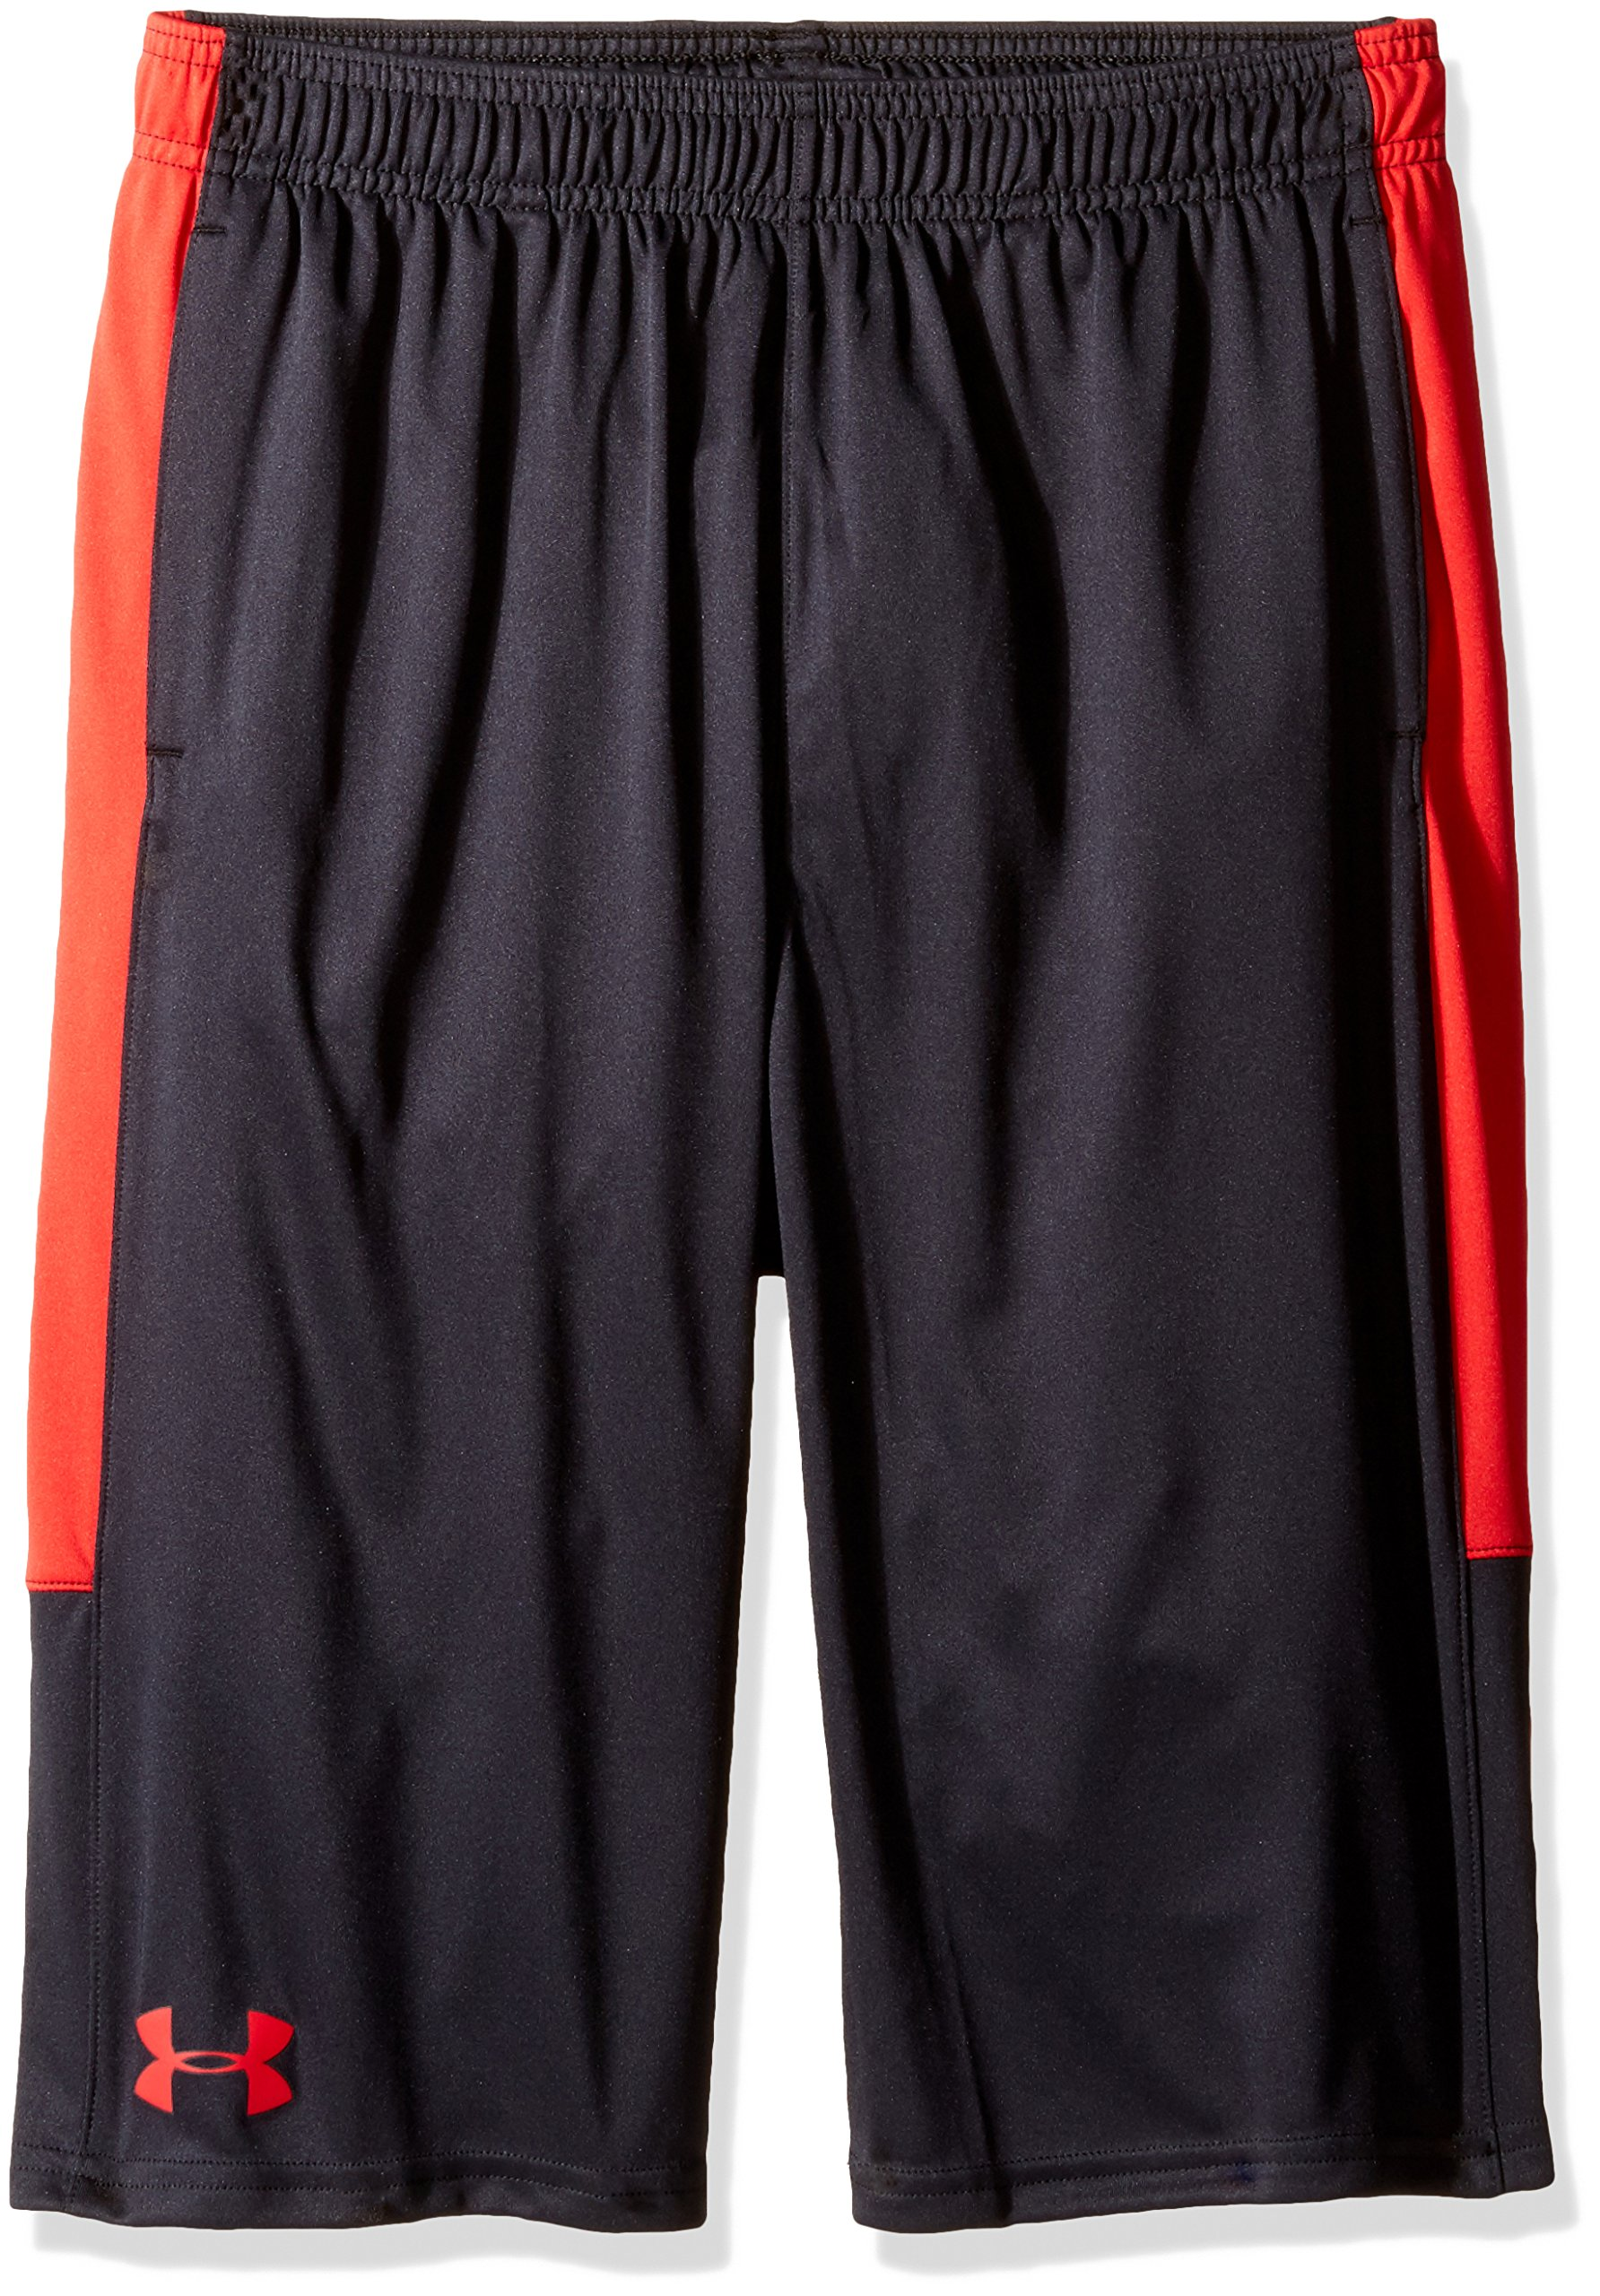 Under Armour Boys Instinct Shorts,Black /Red Youth X-Large by Under Armour